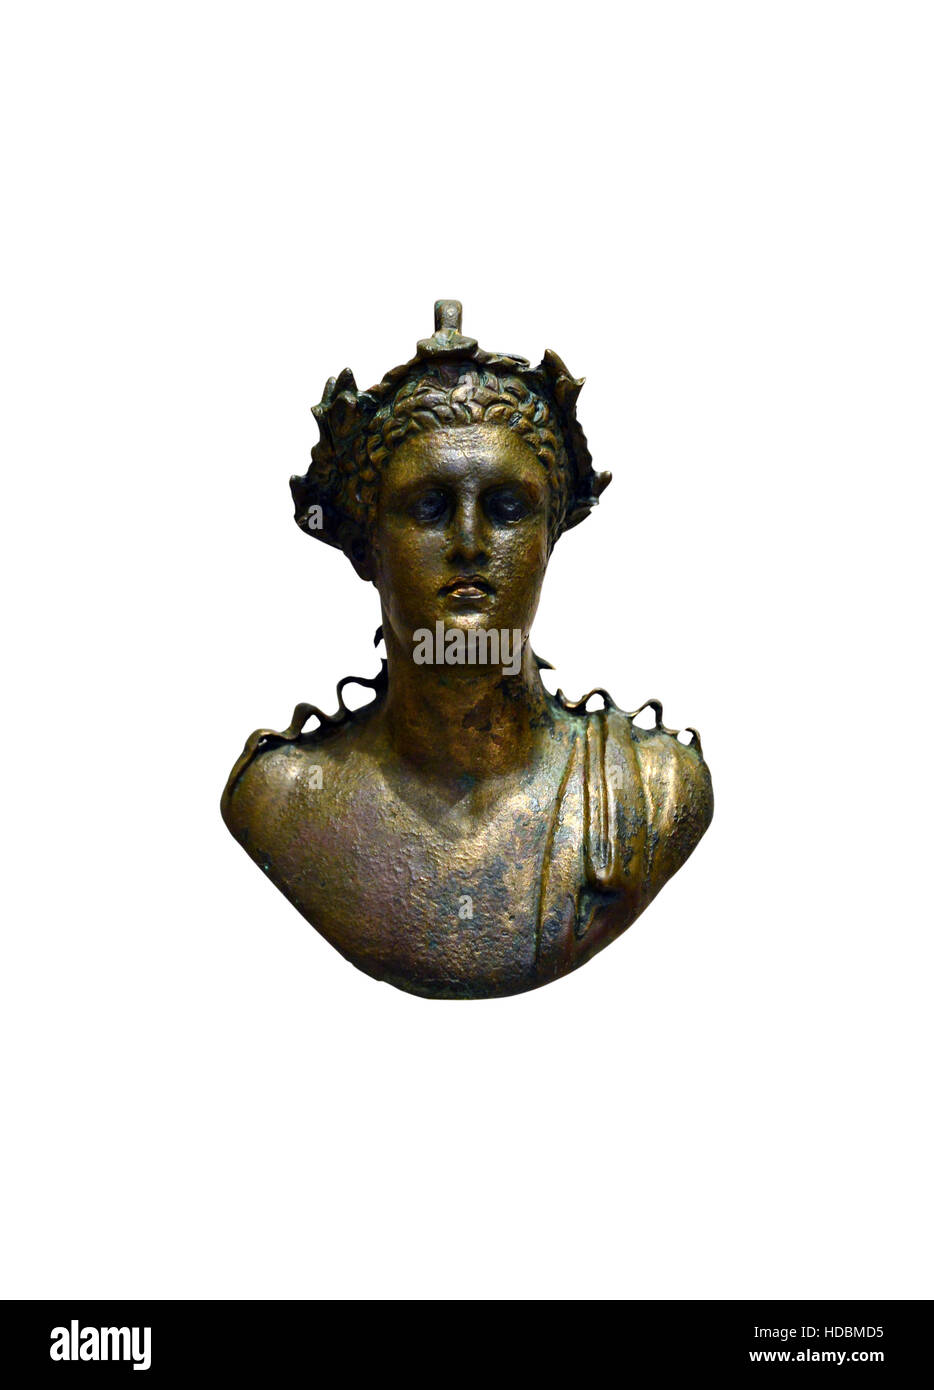 ancient greek bronze deity bust statuette isolated over white - Stock Image